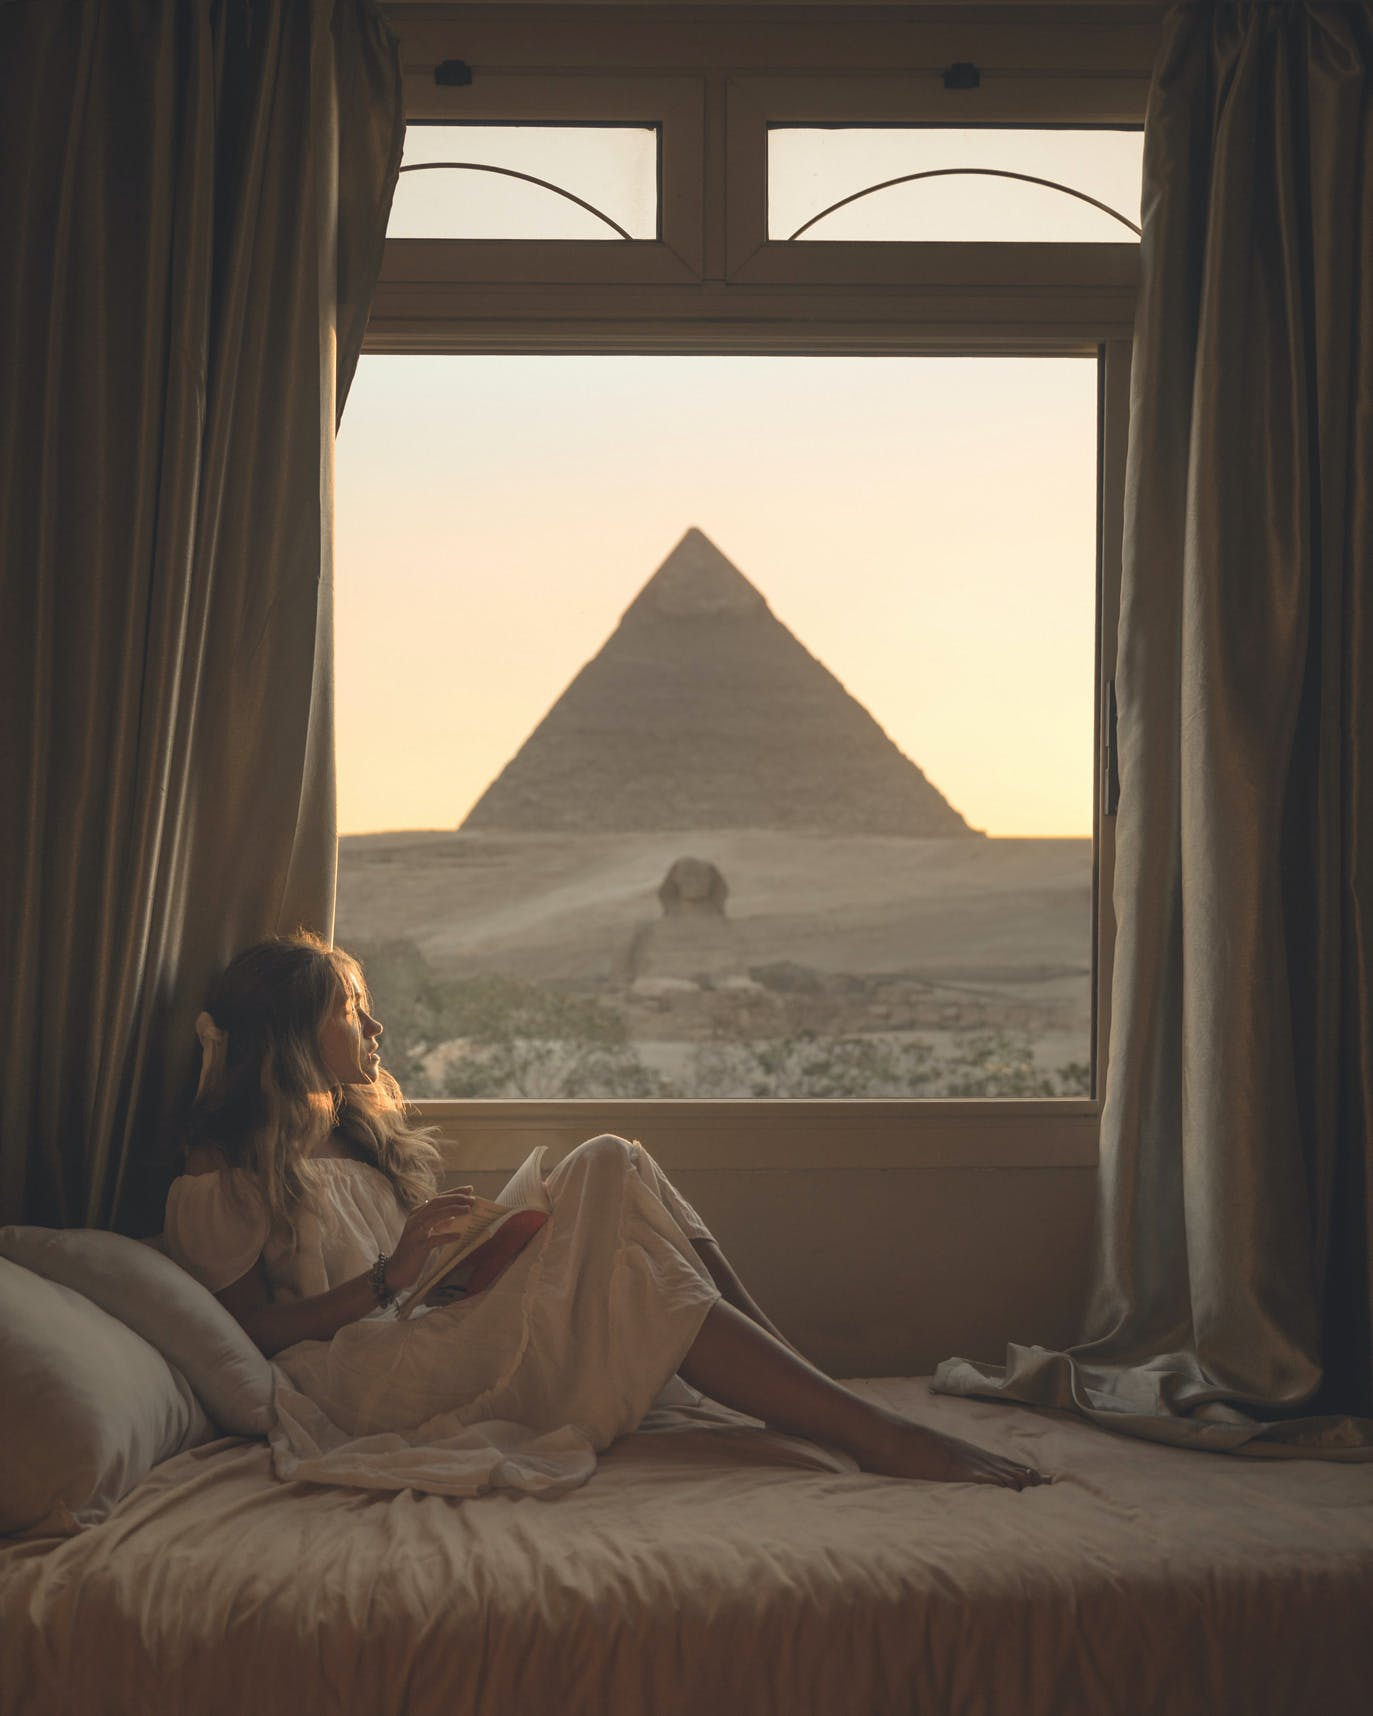 Guardian Guest House view of Great Sphinx of Giza & Pyramid of Khafre